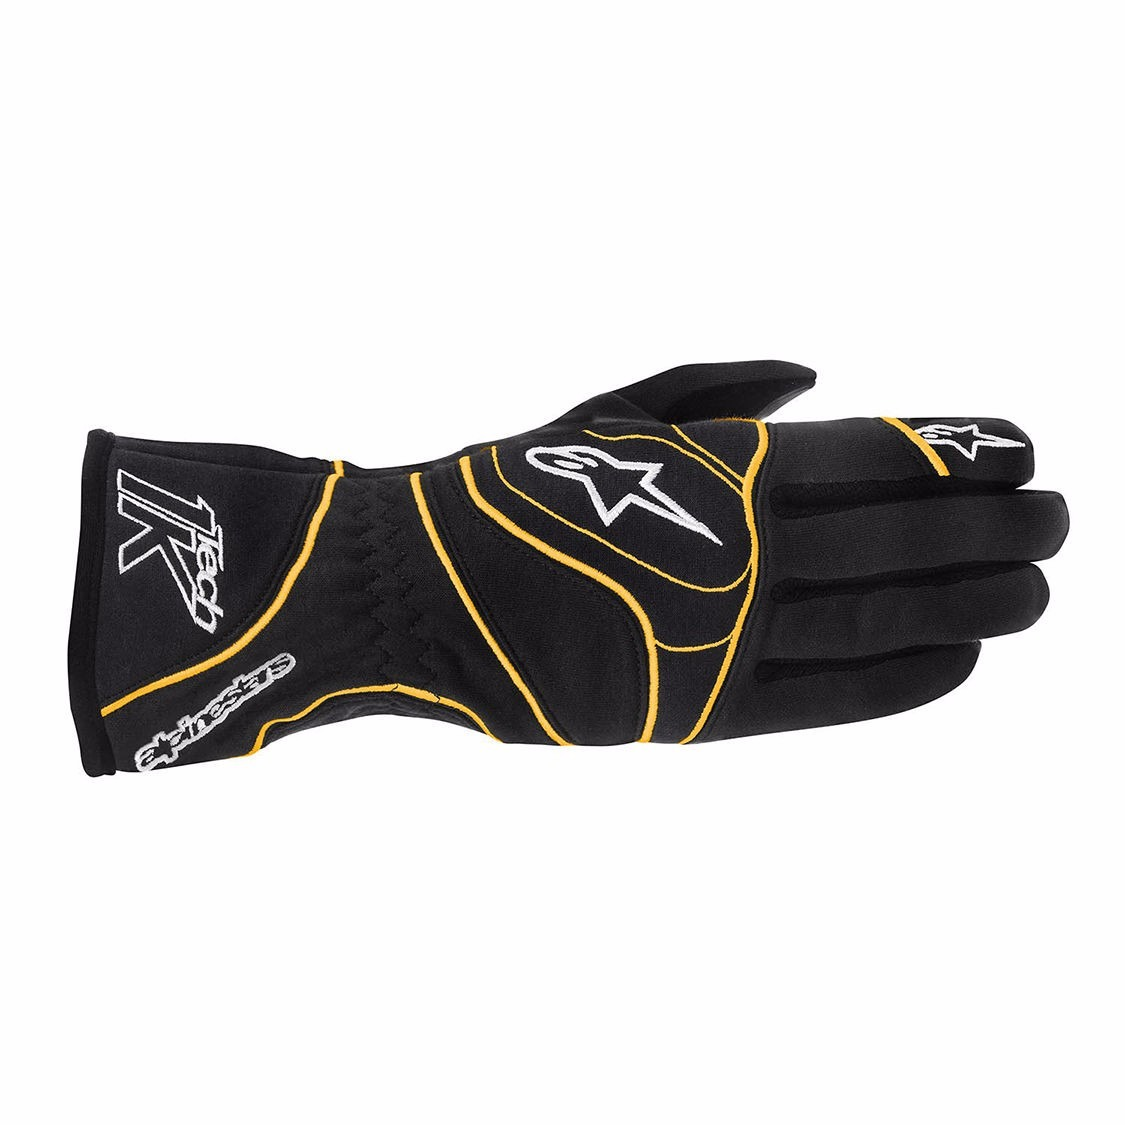 Alpinestars Alpinestars Guantes De Kart Tech 1 K - Racing Karting Gloves